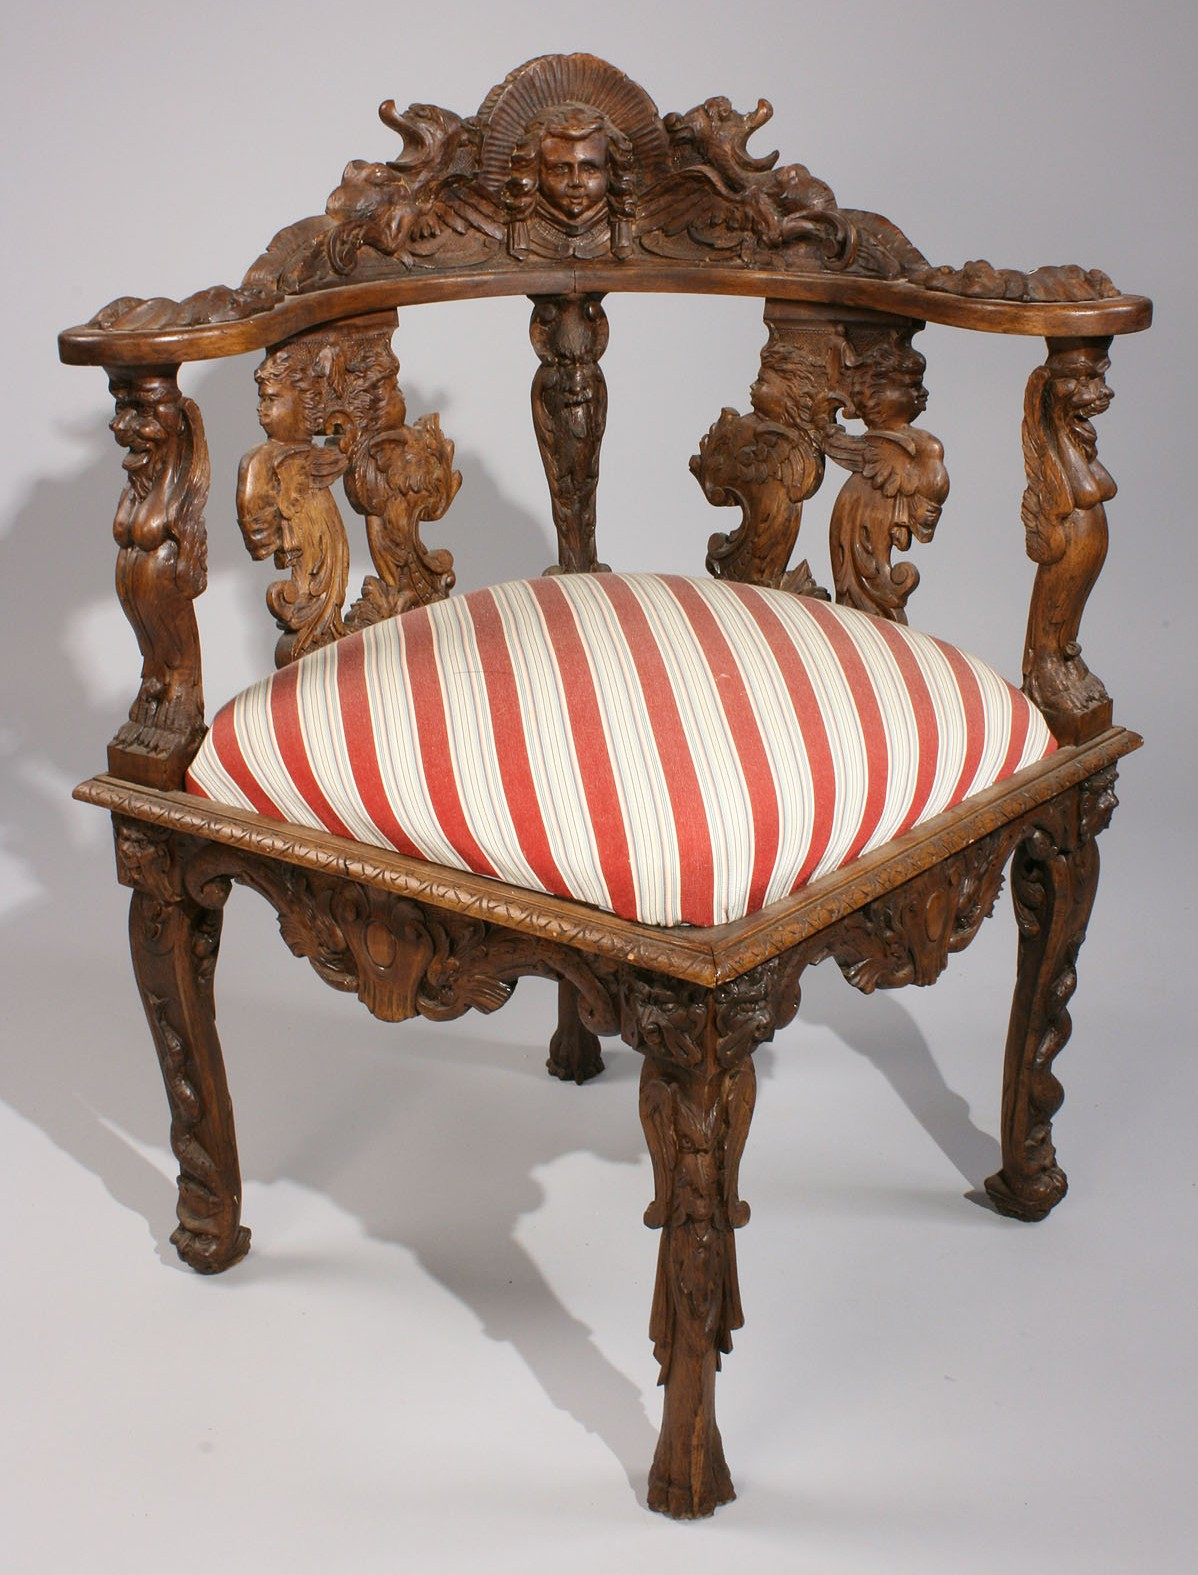 - Lot 333: Carved Italian Corner Chair